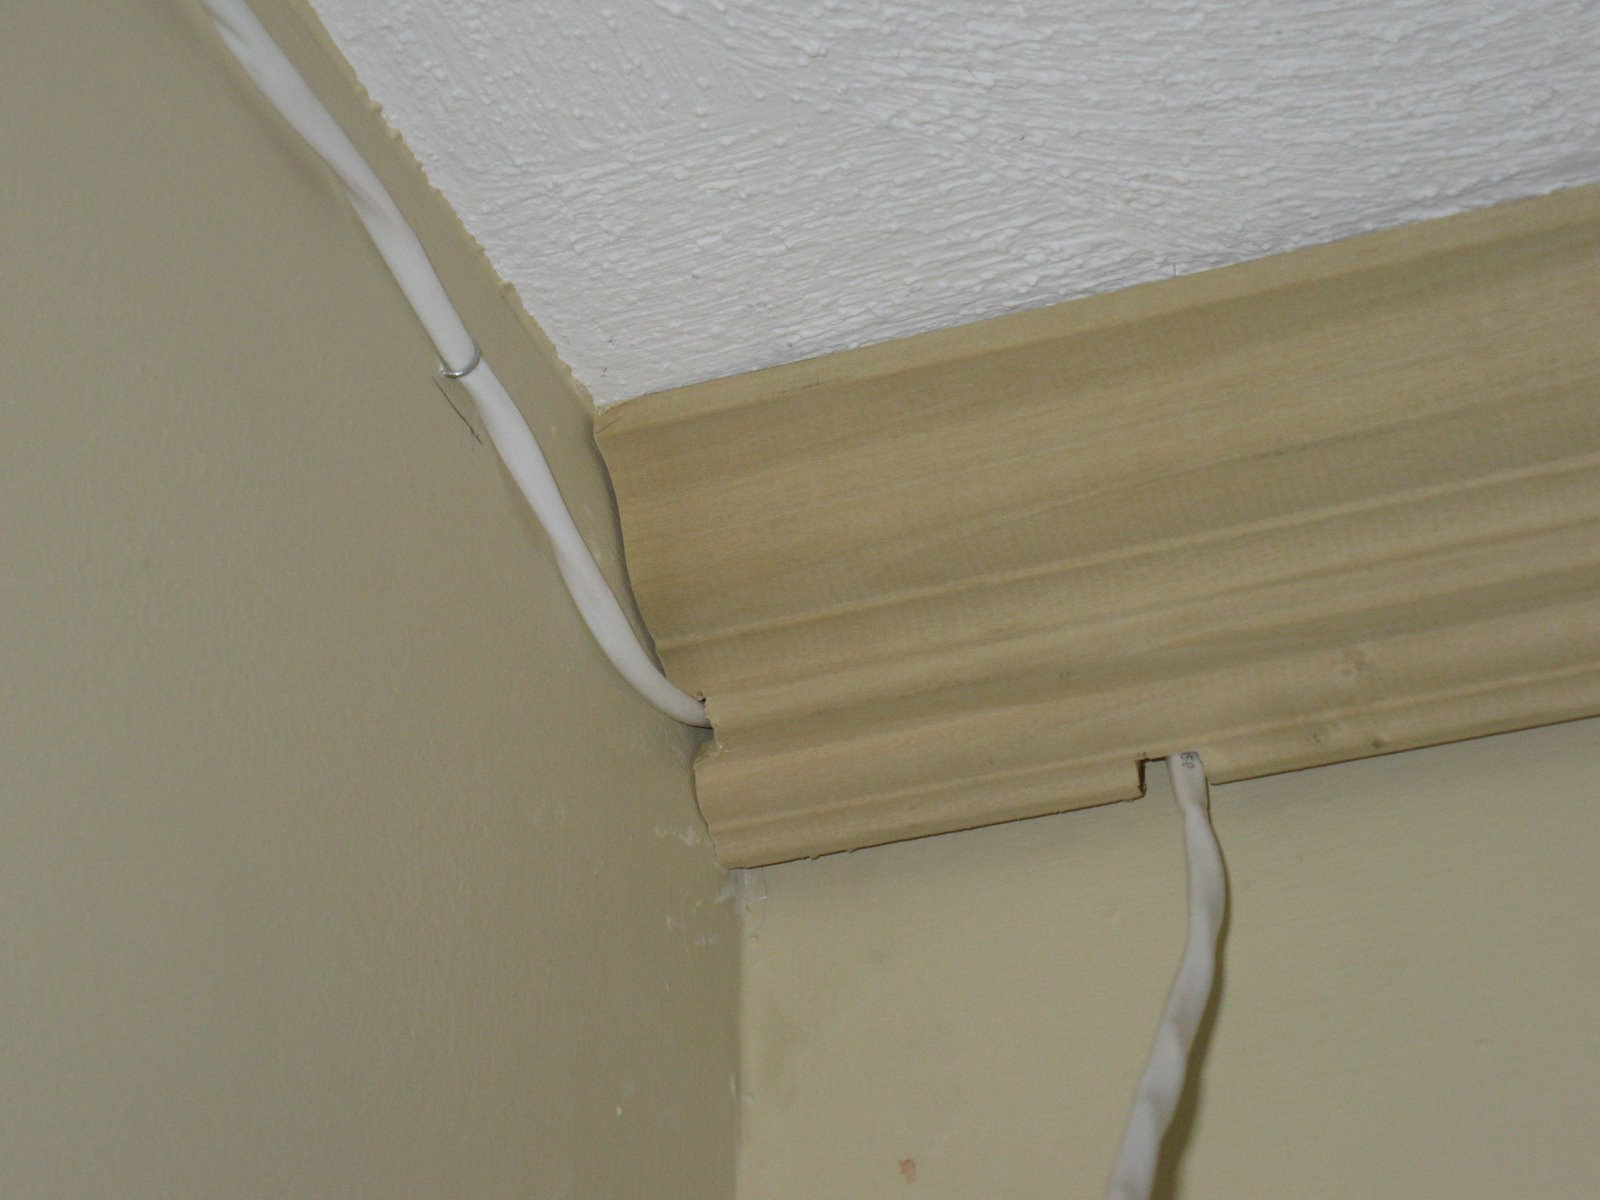 How to Install Speaker Wire Behind Crown Molding - A Concord Carpenter